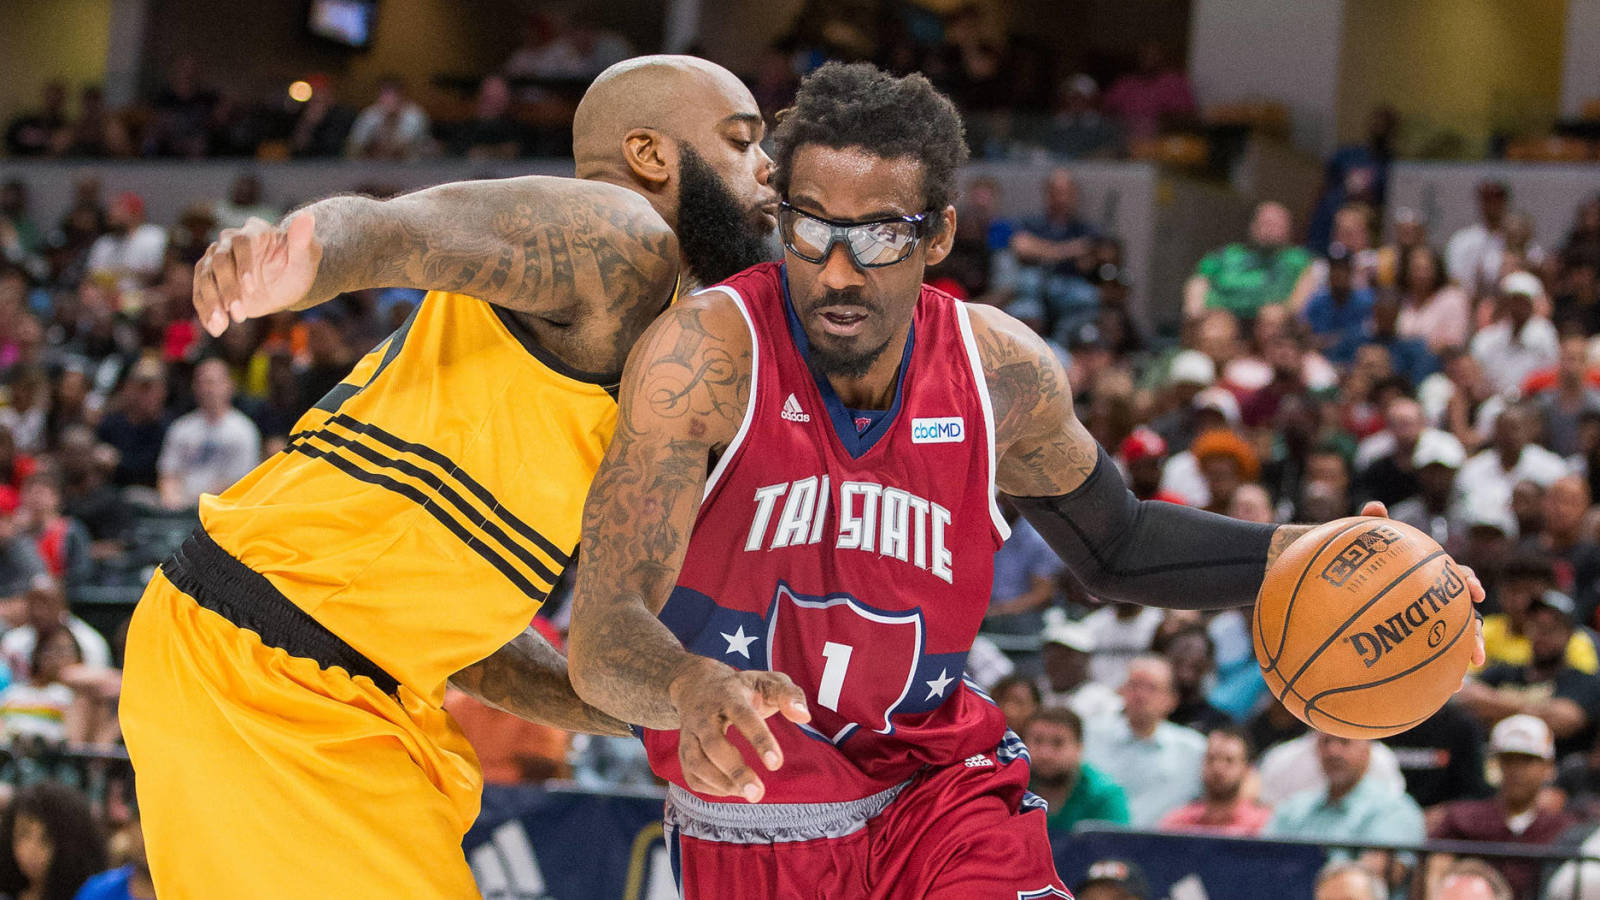 Amar'e Stoudemire to join Nets as assistant coach